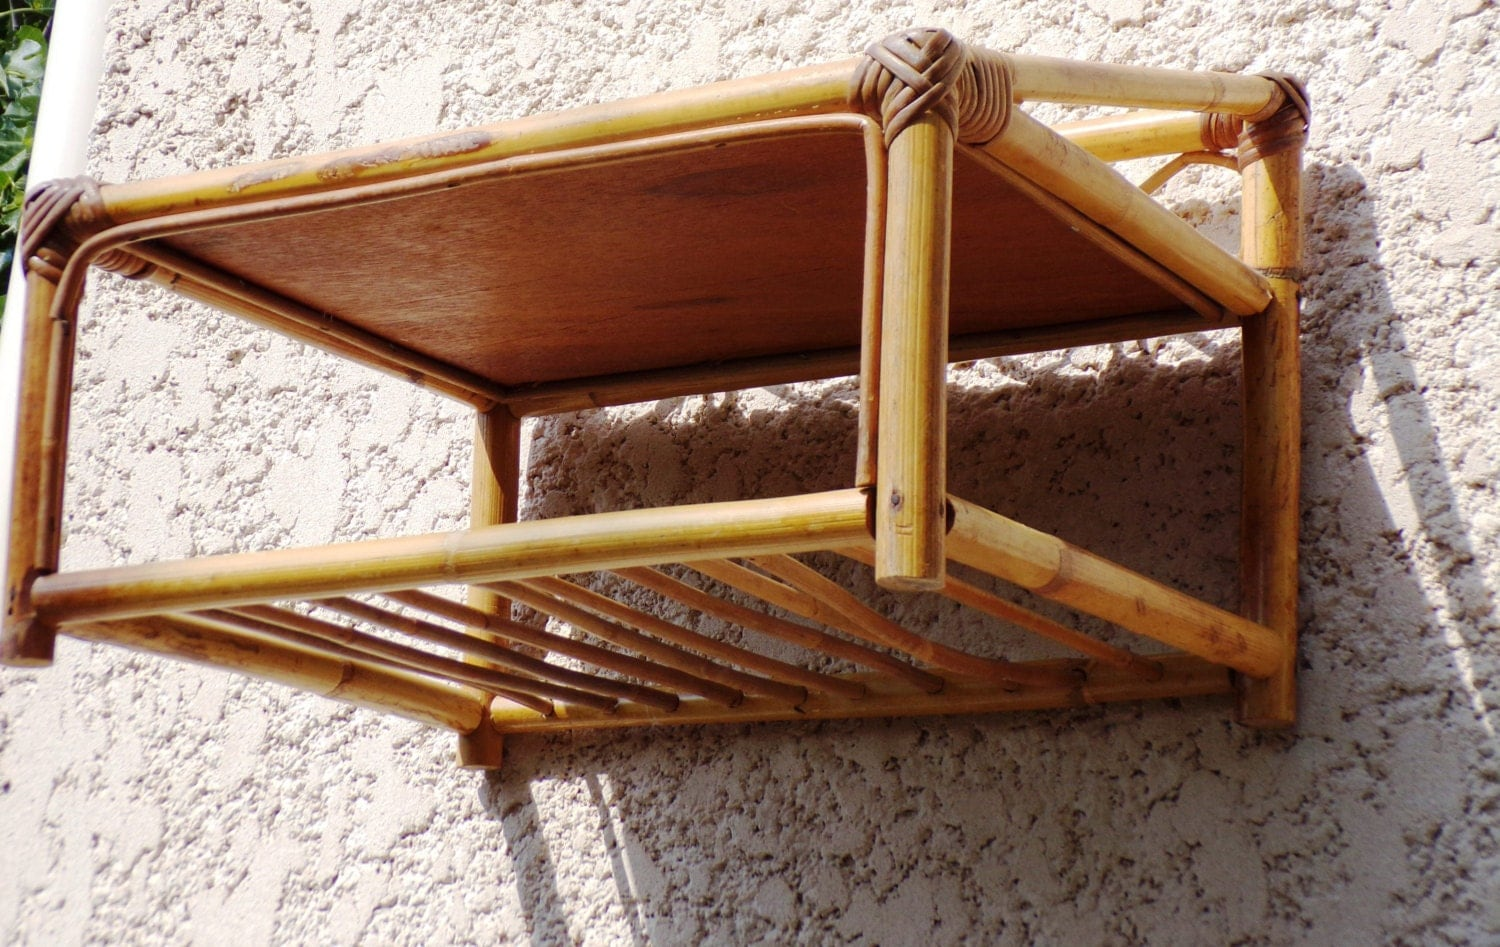 Wall Bamboo Rattan Shelf Vintage 1950 France Mid Century